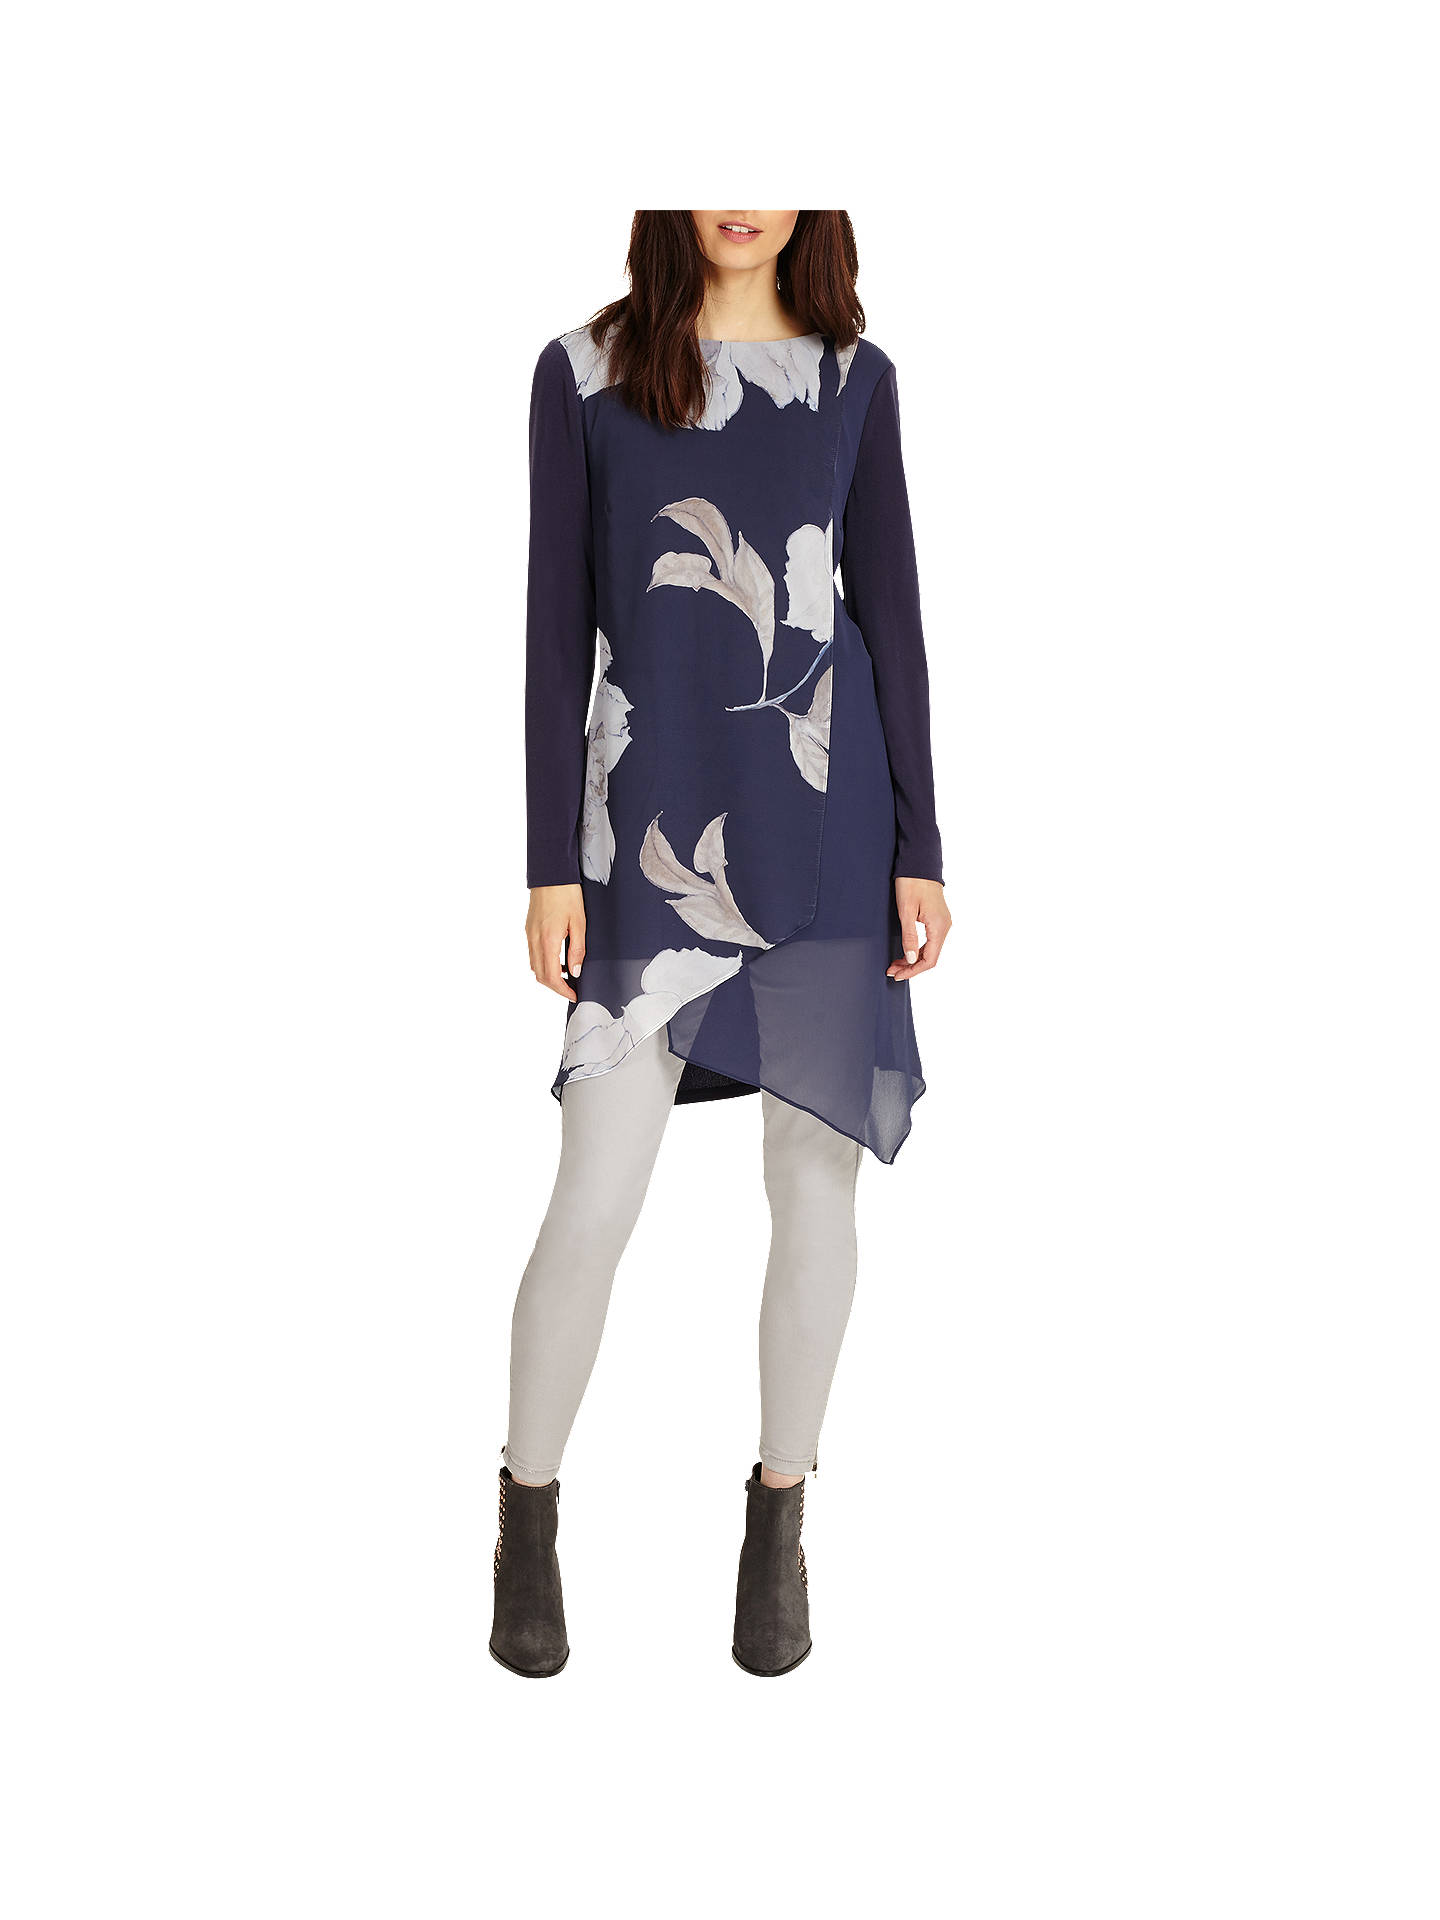 22379bfc748 ... Buy Phase Eight Vinny Floral Tunic, Navy, 8 Online at johnlewis.com ...